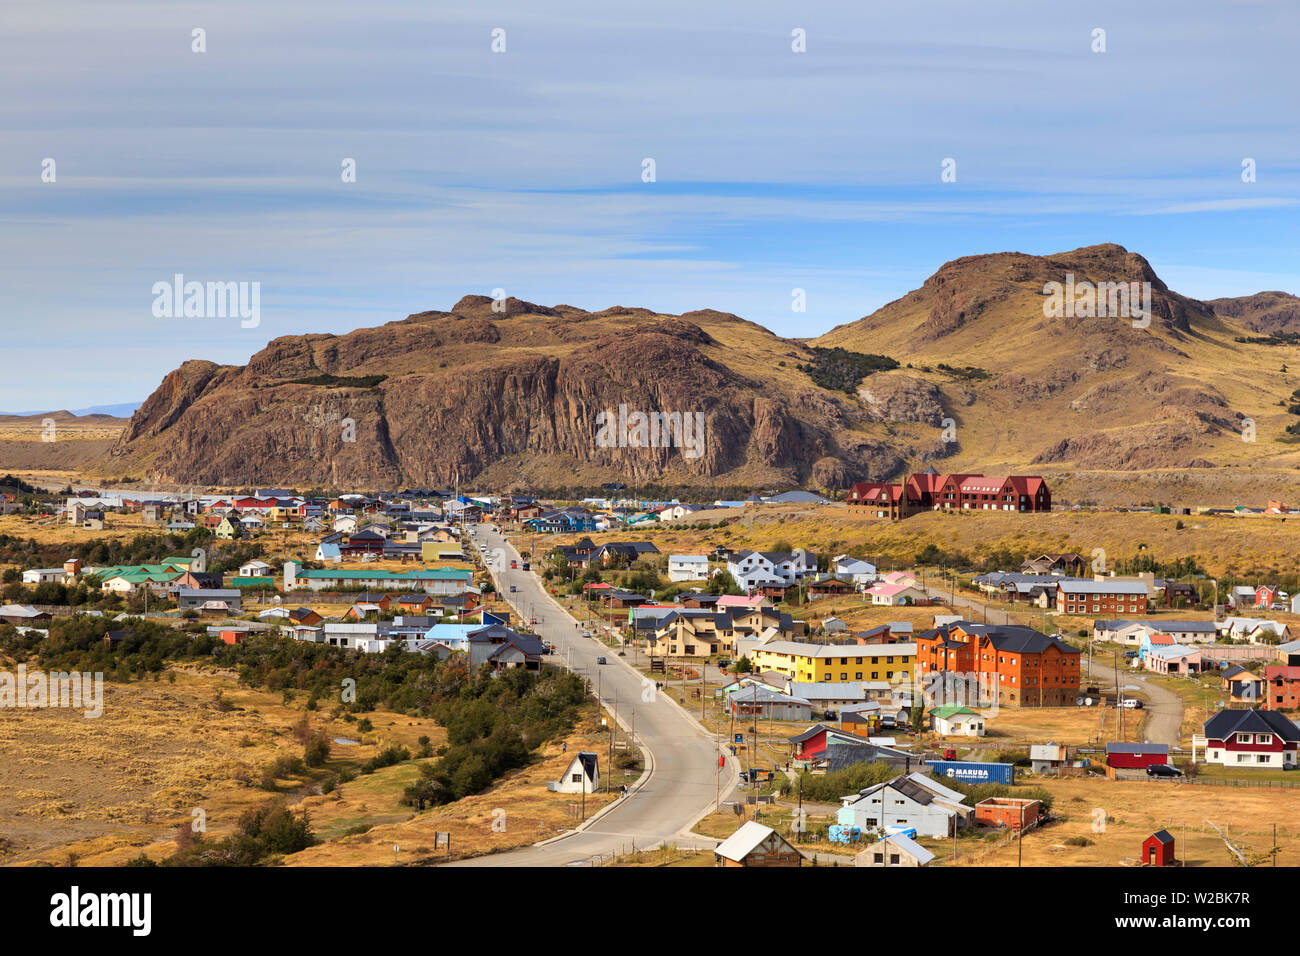 Argentina, Patagonia, El Chalten town seen from Fitzroy trail - Stock Image